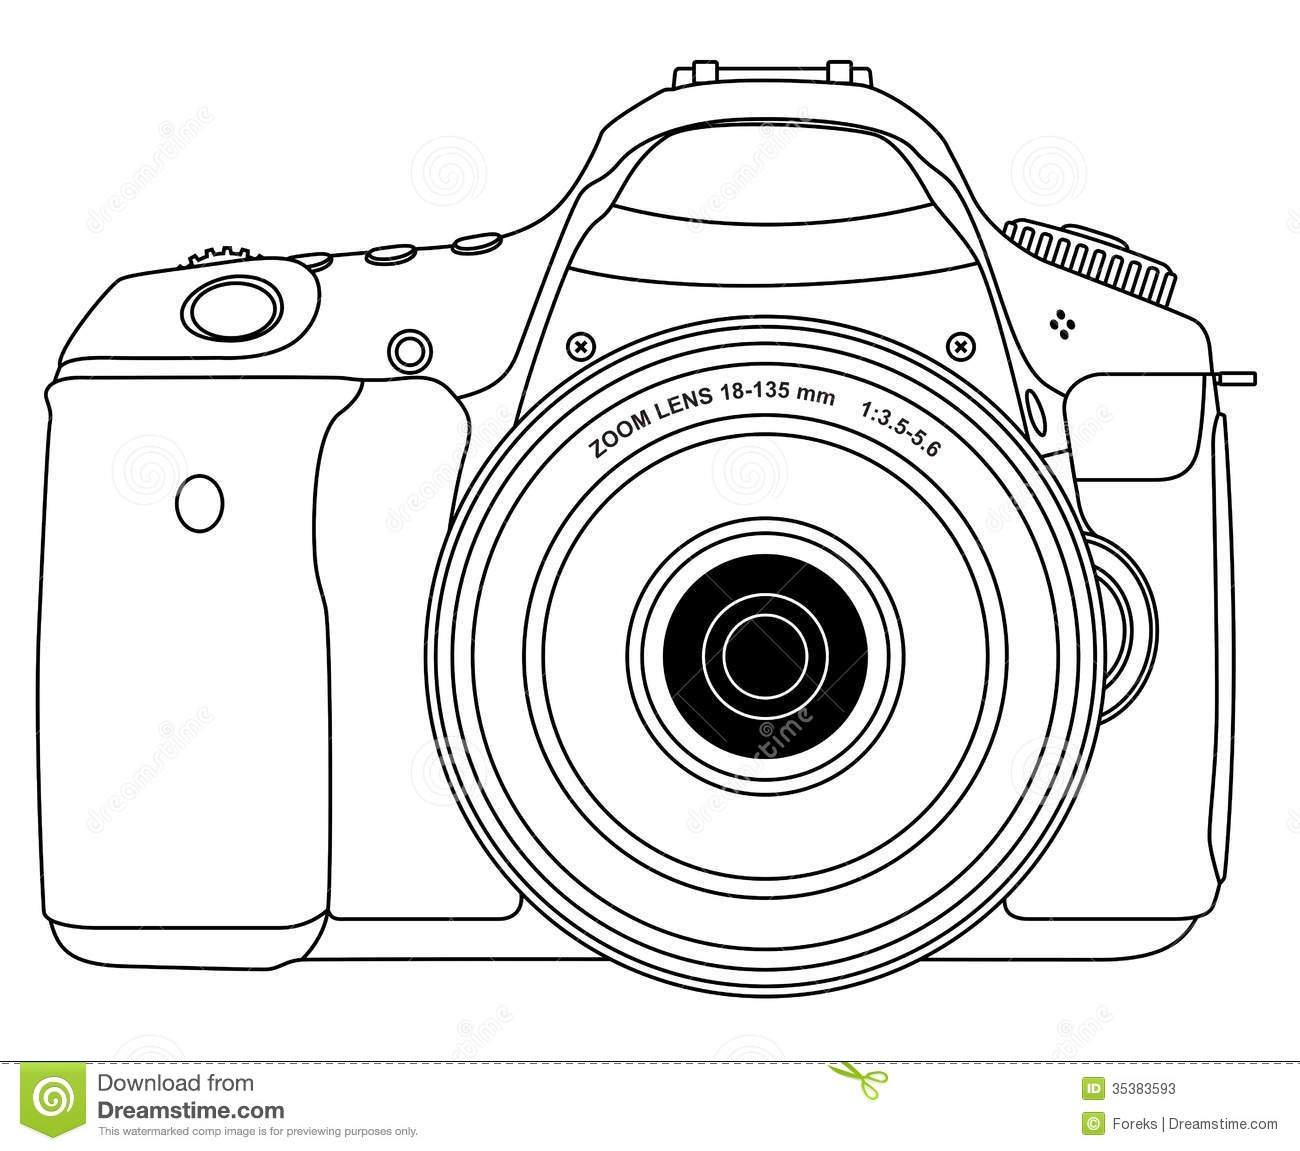 Diagram Of Dslr Diagram Of Aperture ~ Elsavadorla